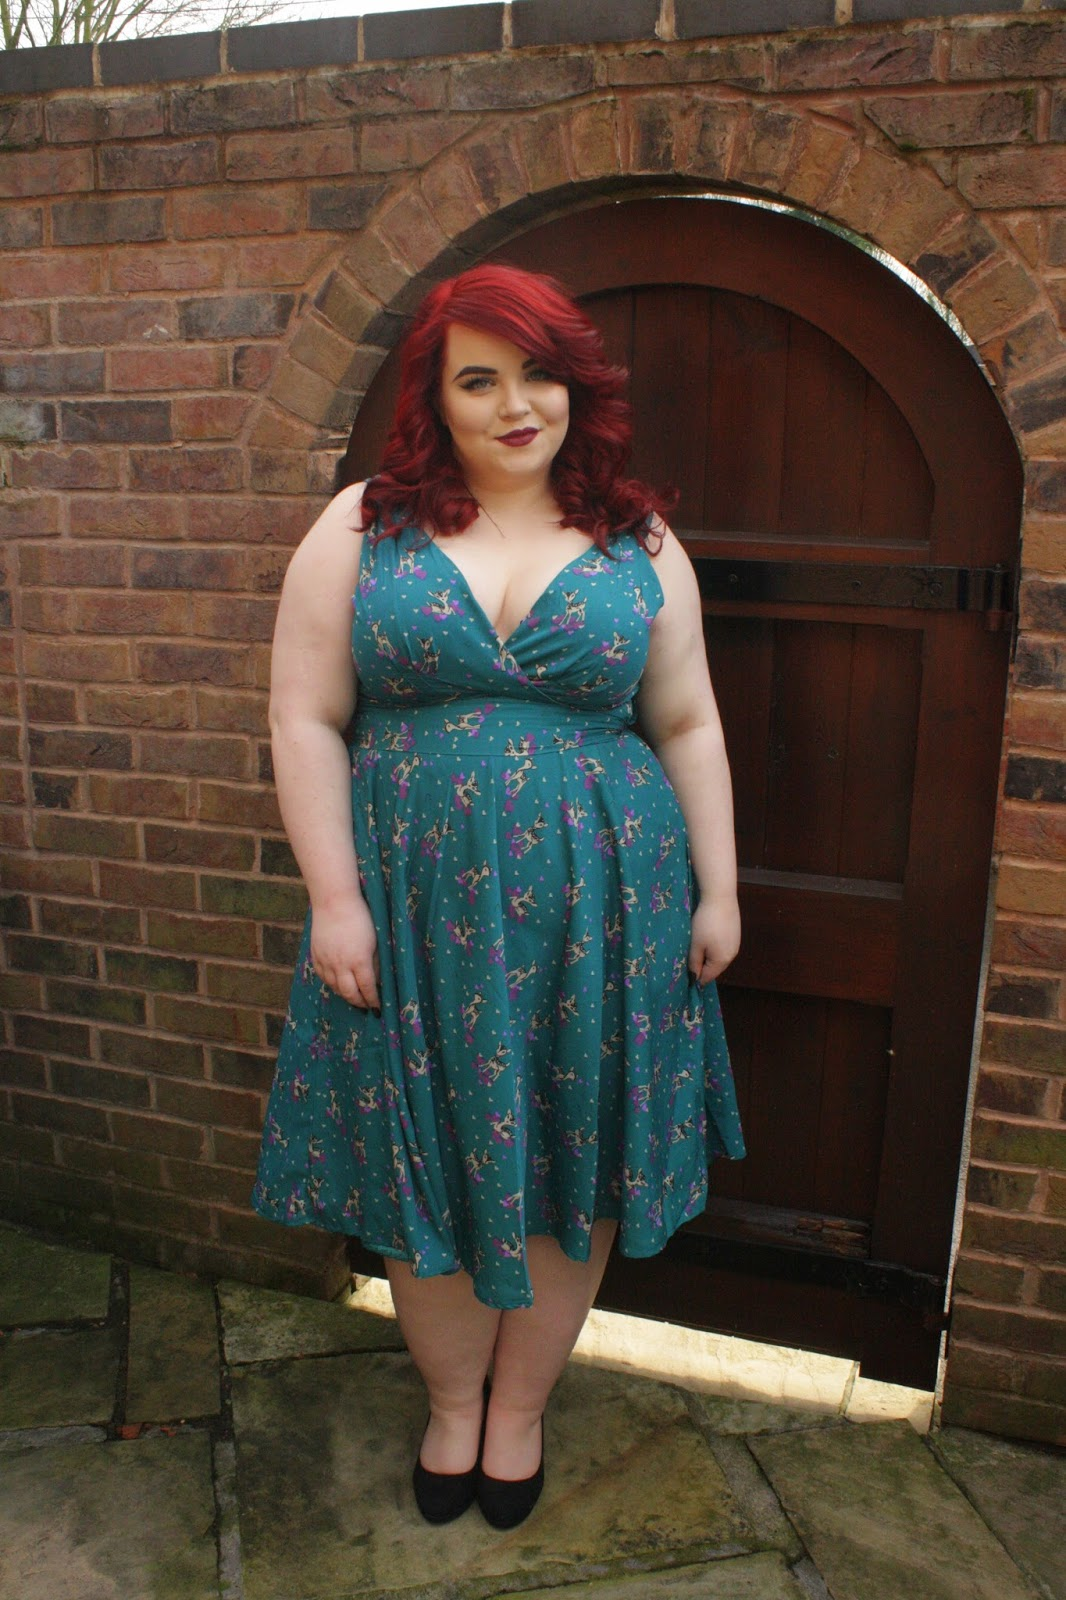 BBW in Blue Dress